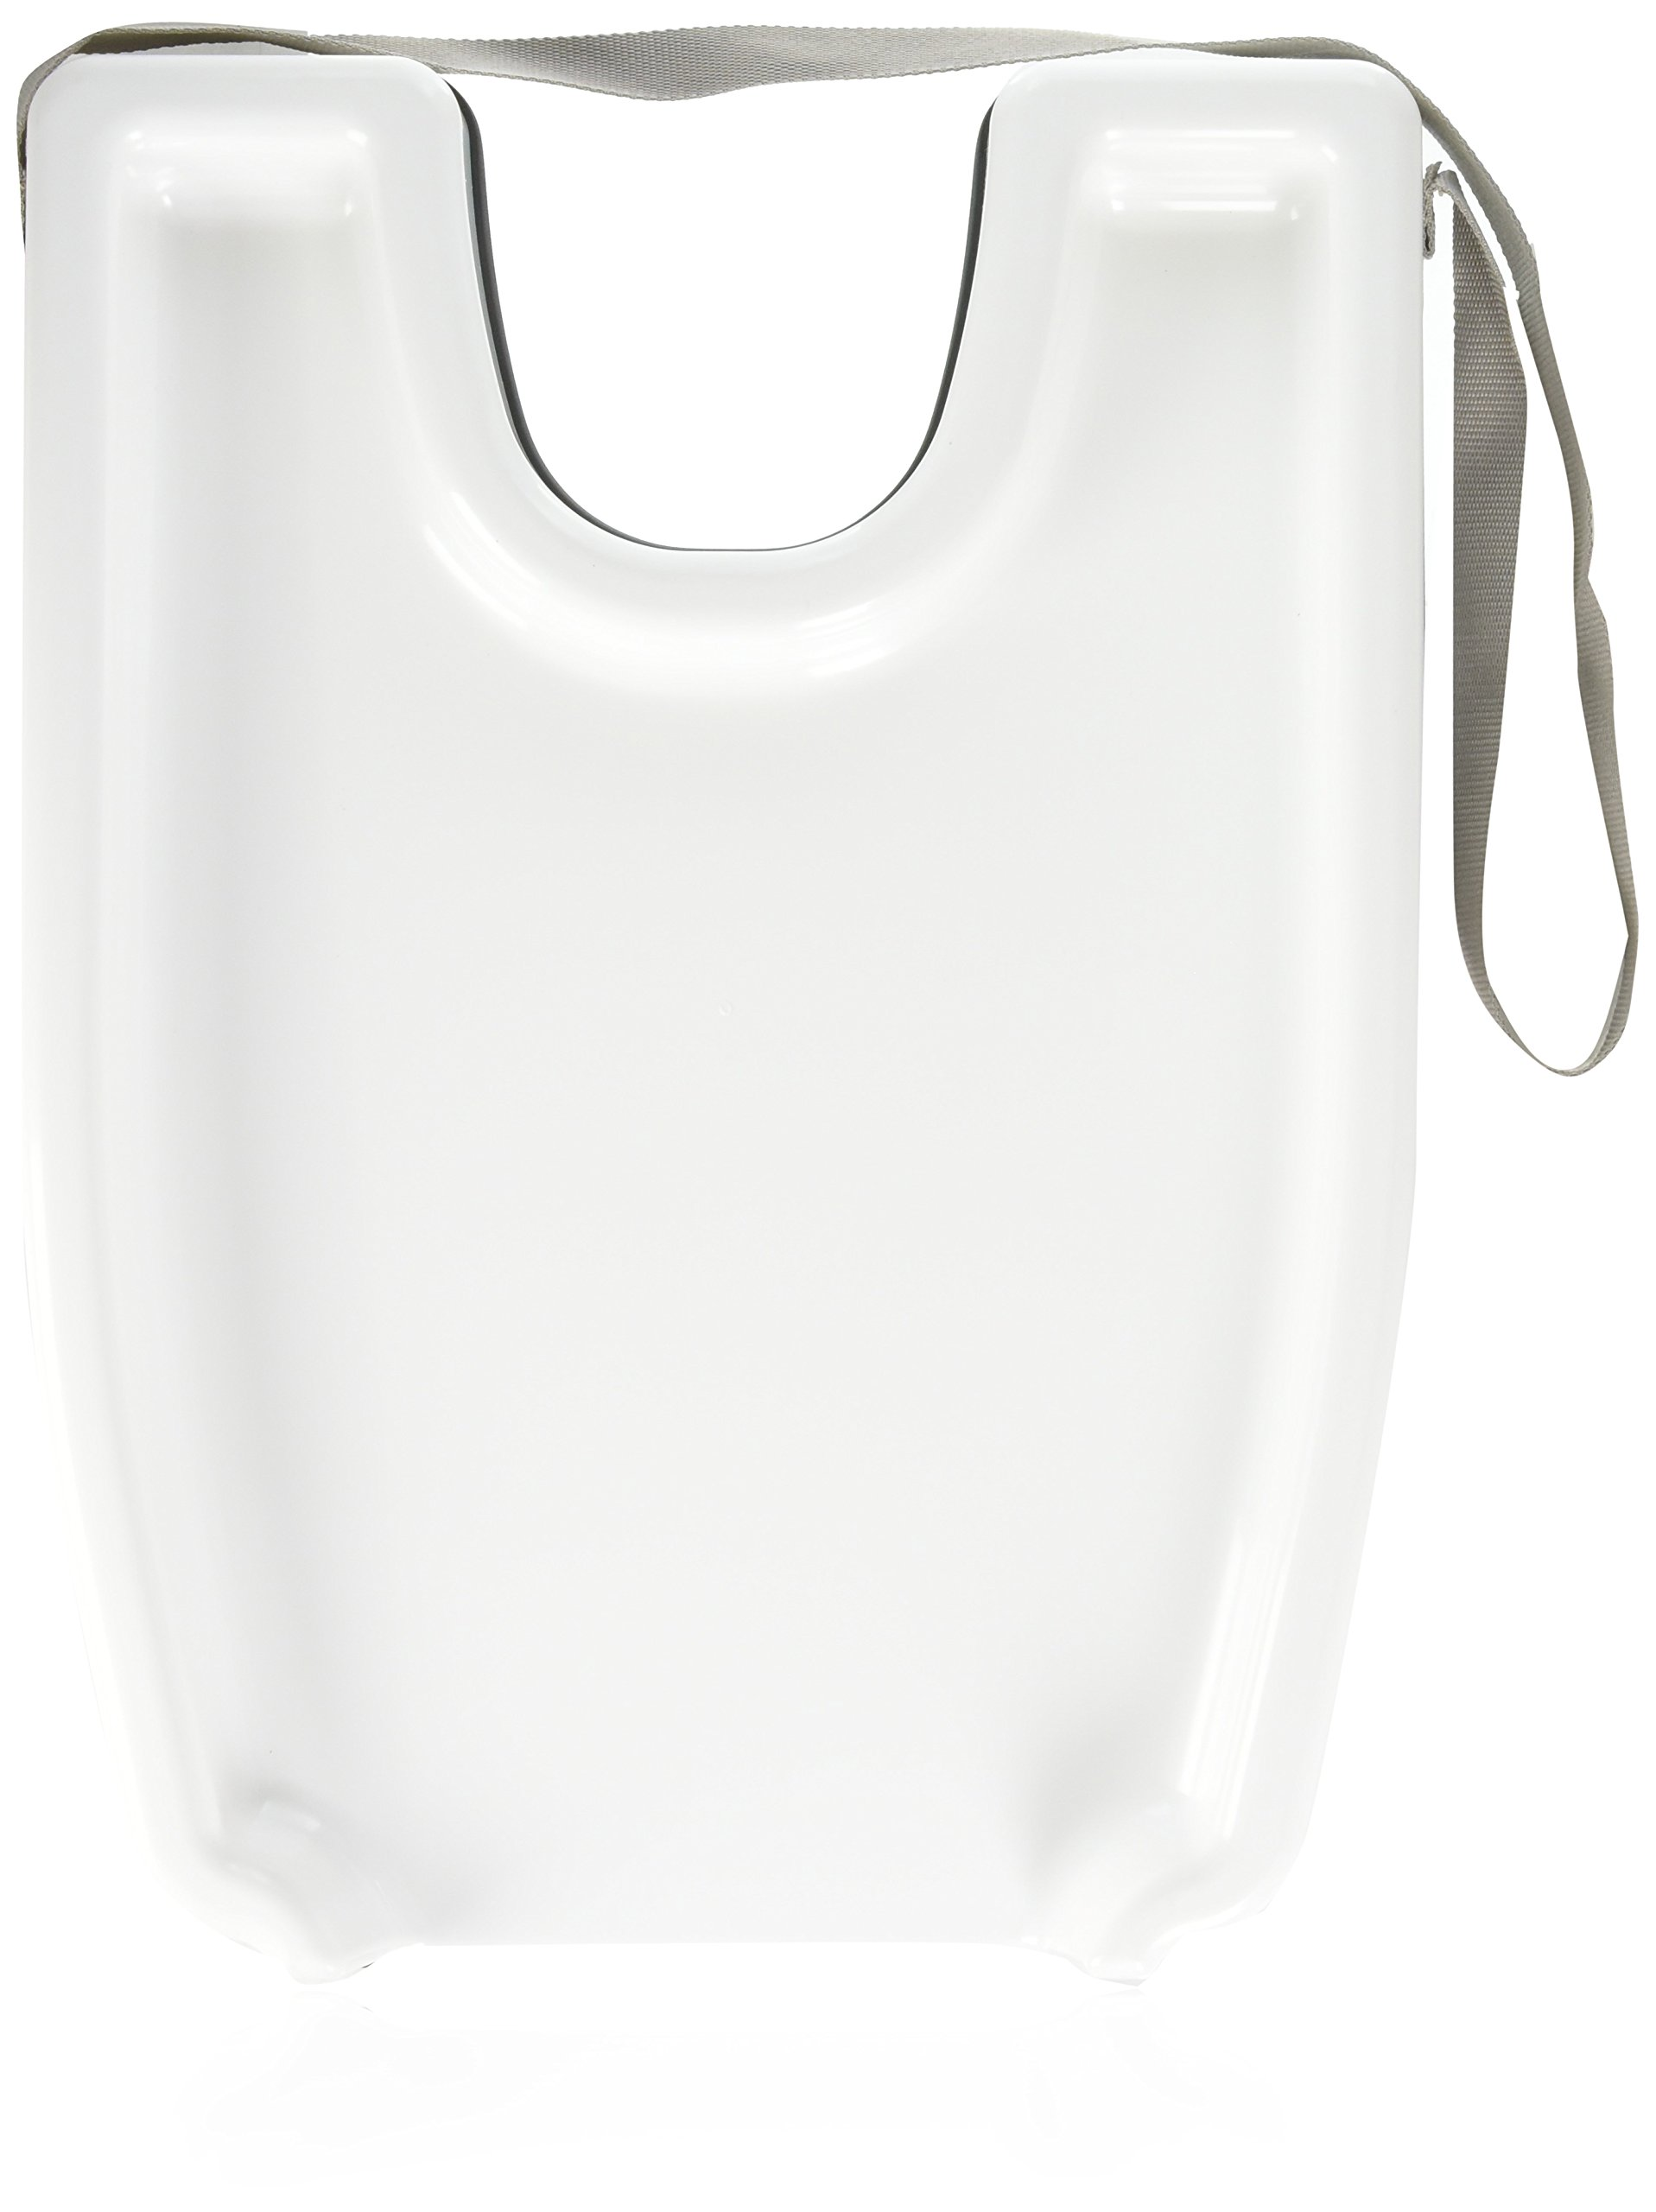 HAIR WASHING TRAY (FOR HOME OR SALON - USE WITH CHAIR OR WHEEL CHAIR!) by HAIR WASHING TRAY